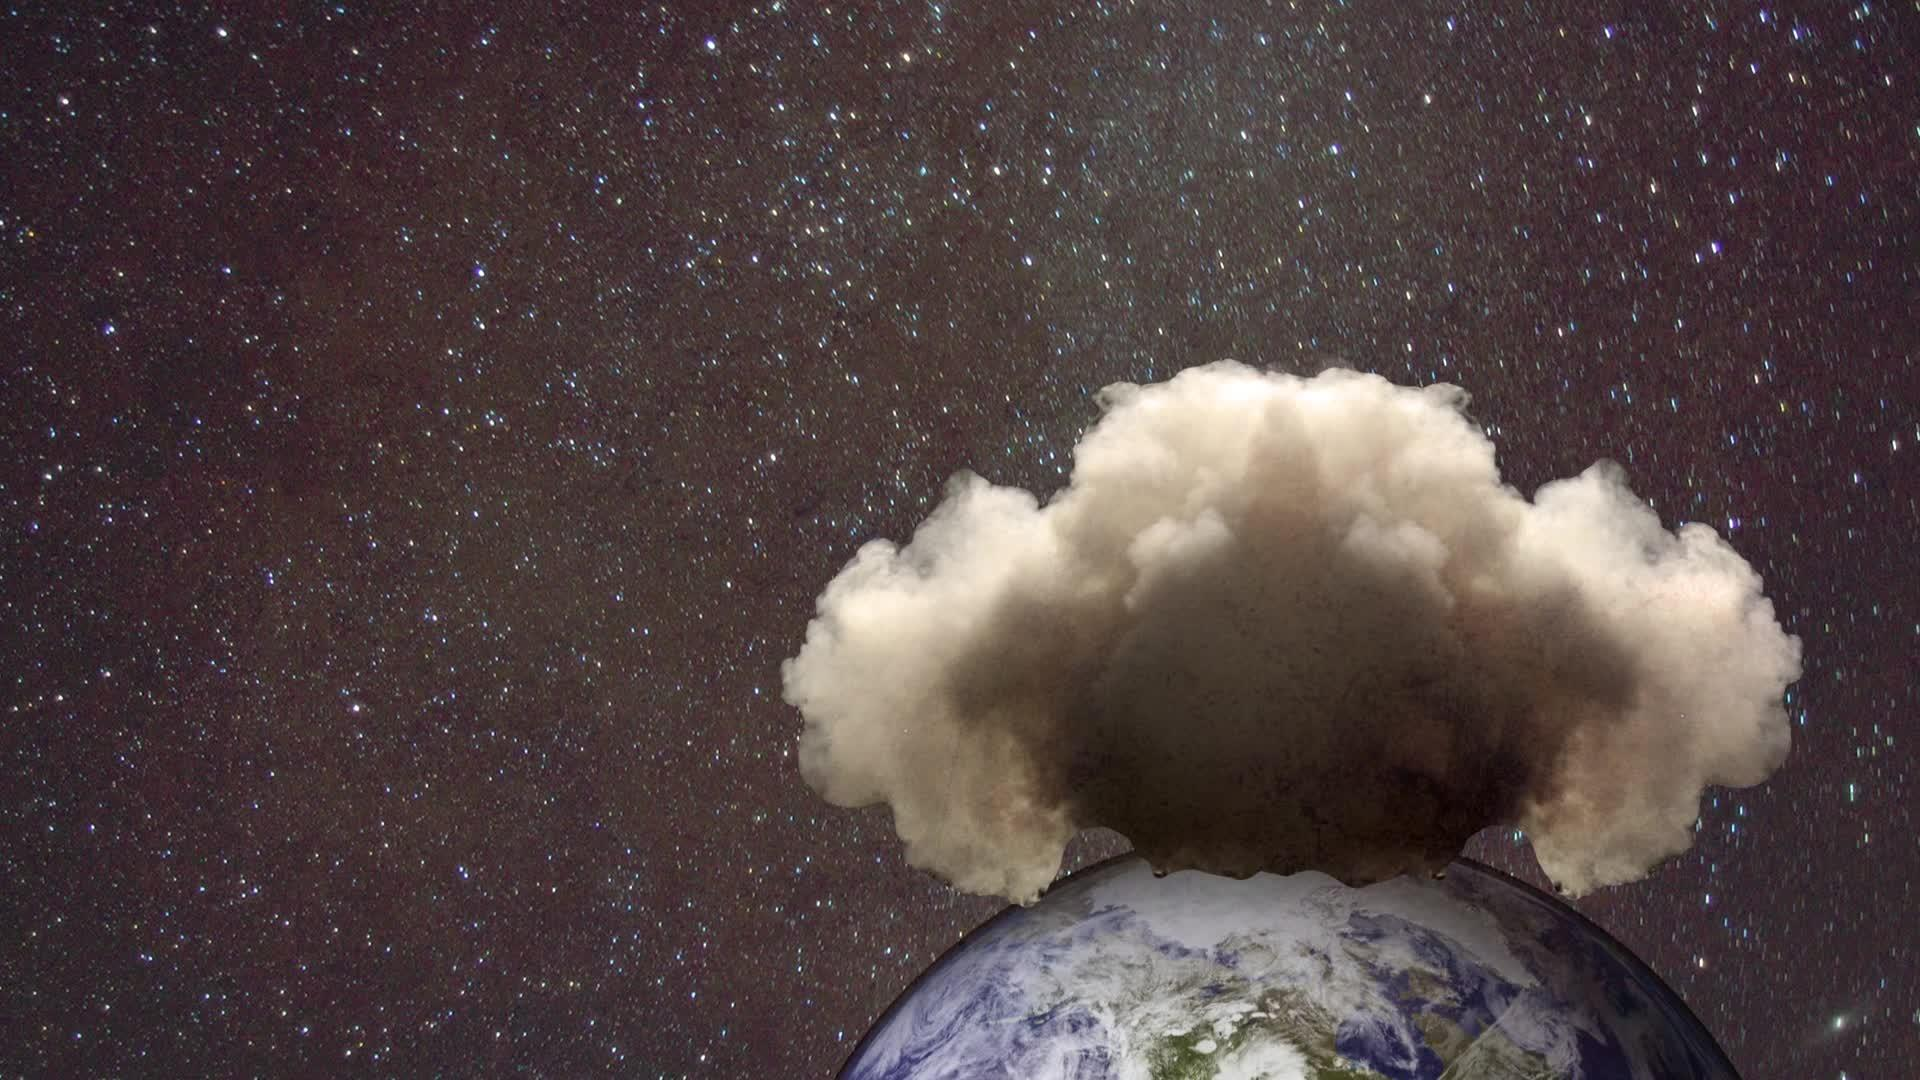 Ask Us Anything: Could An Asteroid Impact Actually Knock The Moon Into Earth?